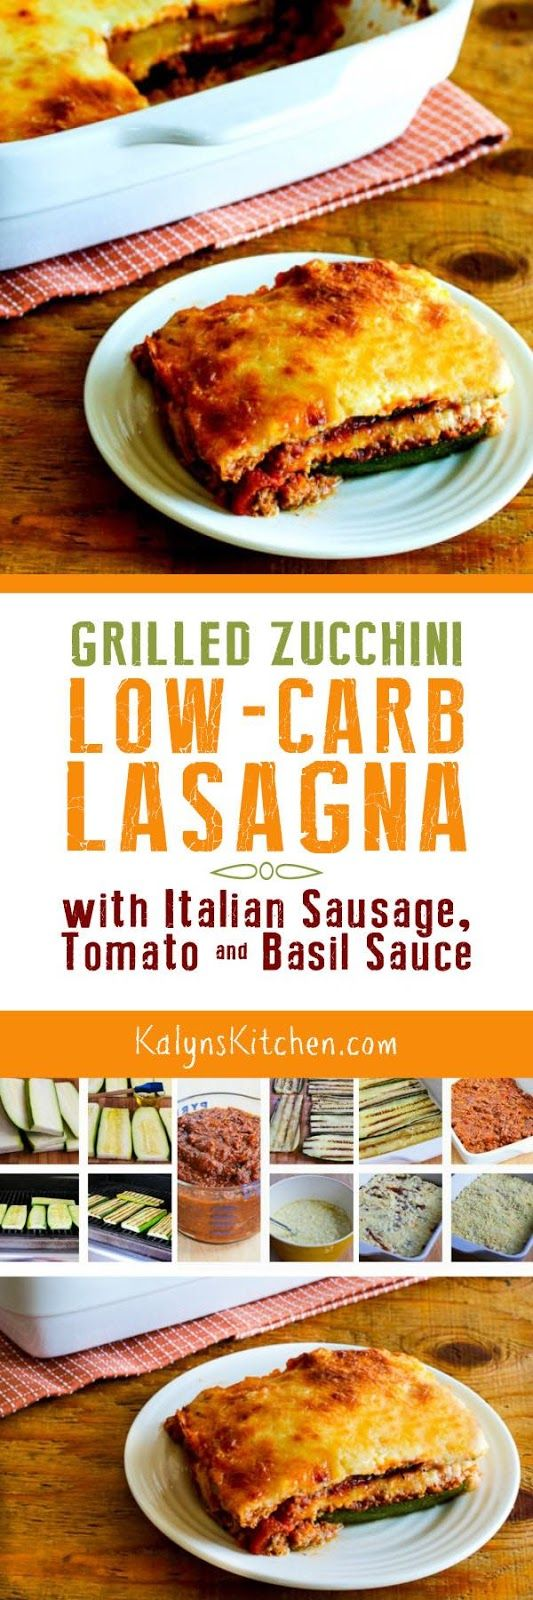 Every fall when the giant zucchini show up, I make this delicious Grilled Zucchini Low-Carb Lasagna with Italian Sausage, Tomato, and Basil Sauce! PIN NOW so you'll have it if you get a giant zucchini. And this low-carb zucchini lasagna is also gluten-free and South Beach Diet friendly. [found on KalynsKitchen.com]